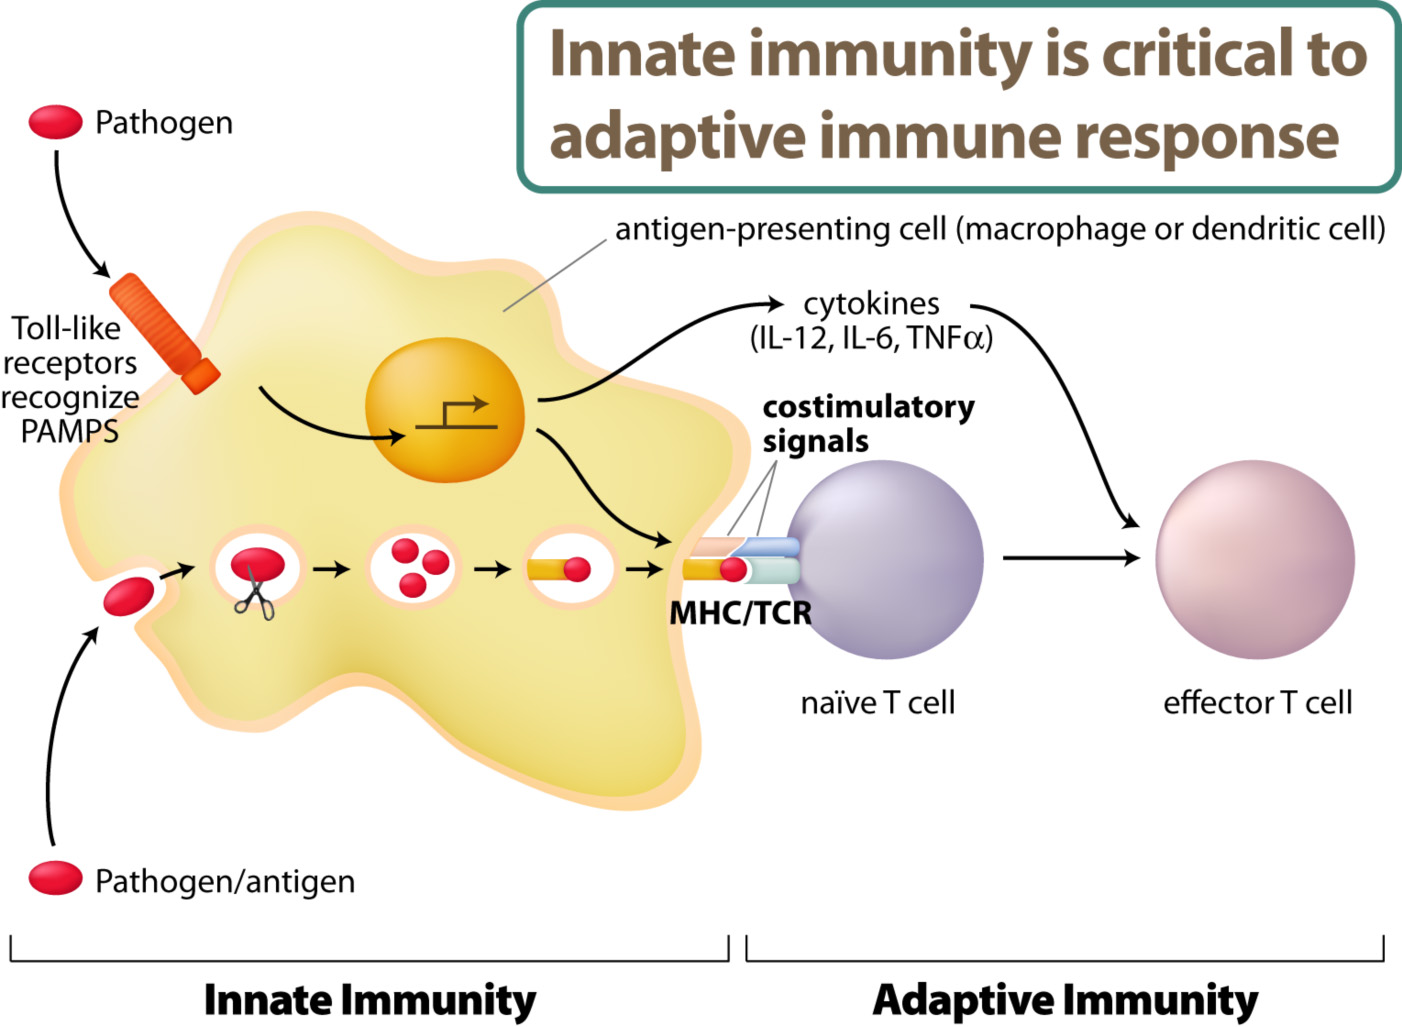 The innate immune system directly recognize pathogens such as virus or bacteria. The activation of innate immunity will allow antigen-specific immune responses by lymphocytes – adaptive immunity.